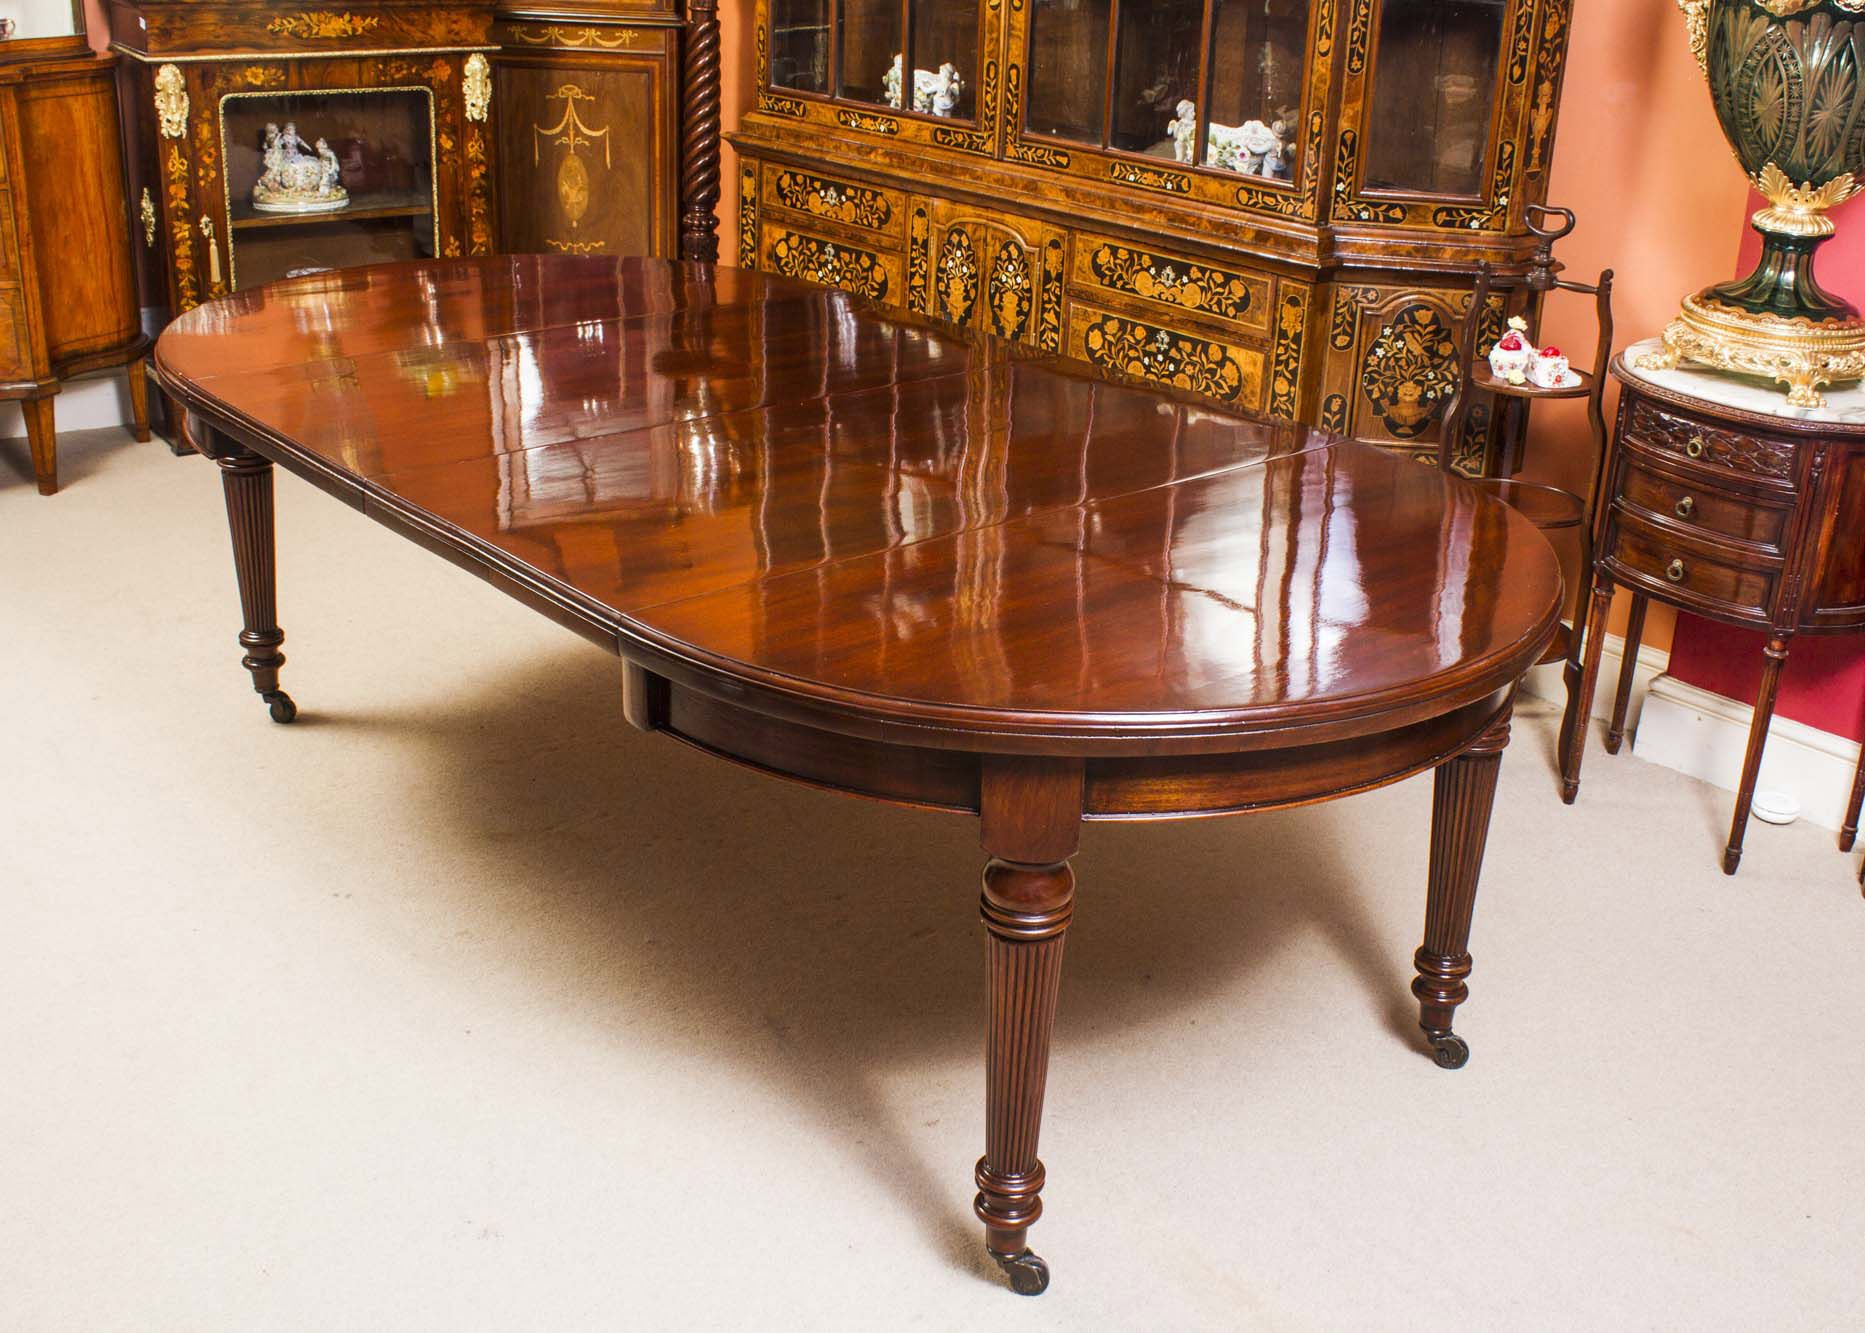 A Jaw Dropping Antique Victorian Dining Table